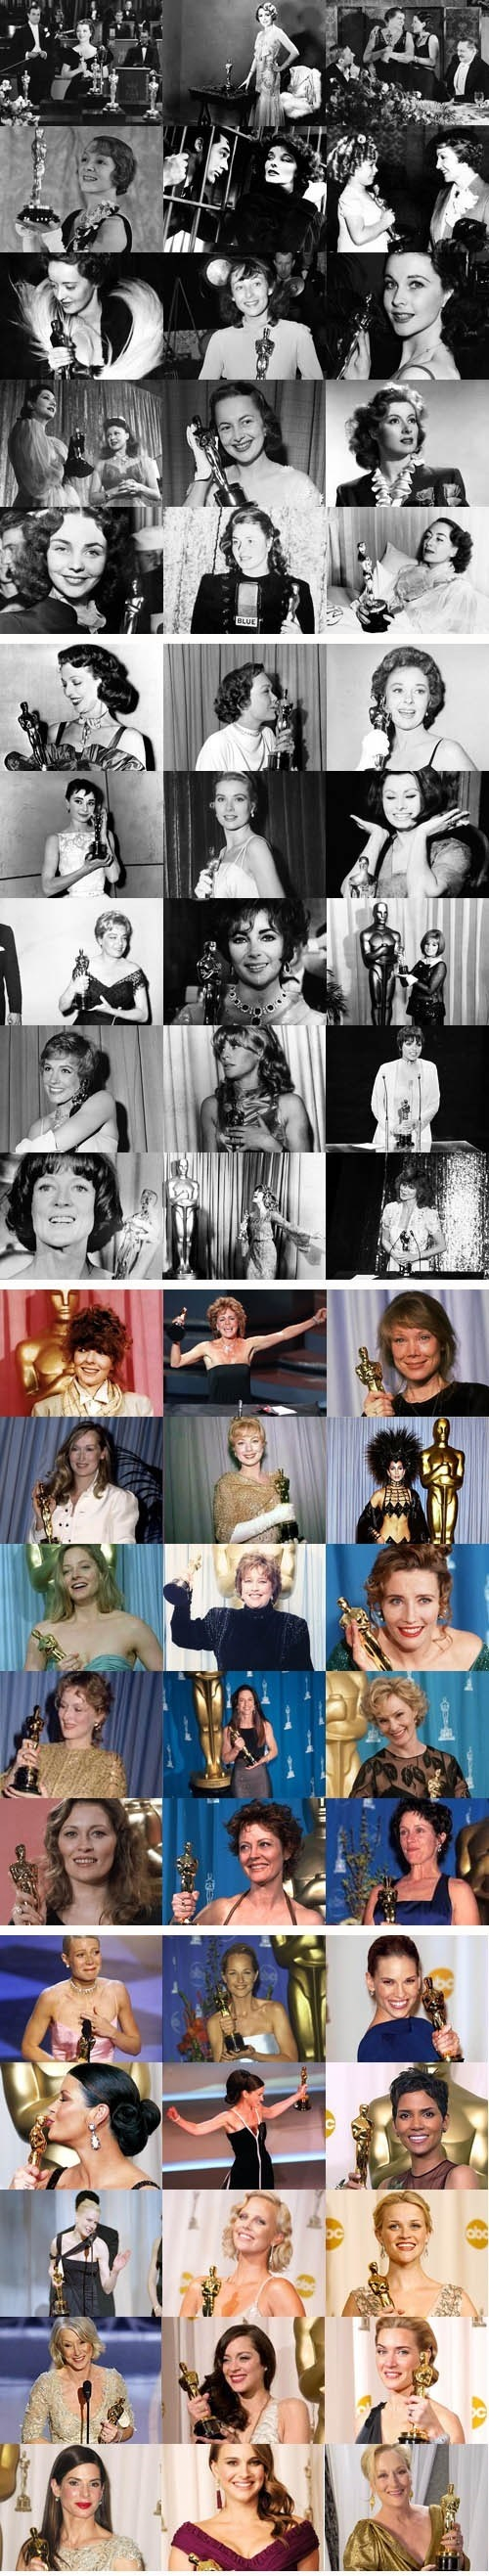 Oscar Winners for Best Actress - Can You Name Them All?